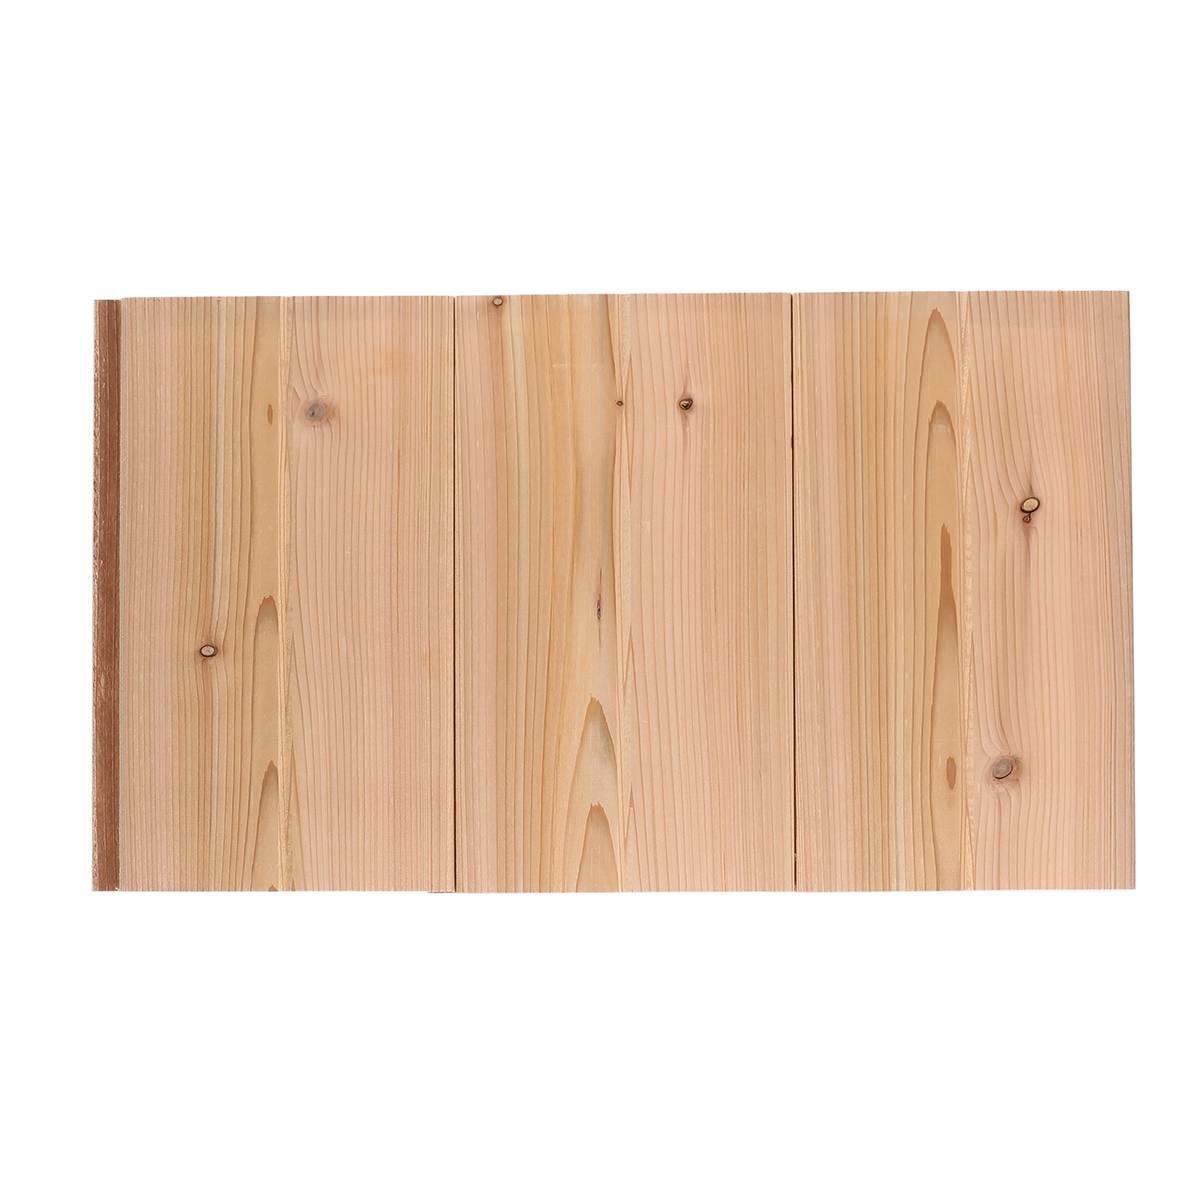 7 8 Quot X 9 1 4 Quot Knotty Inland Red Cedar Channel Rustic